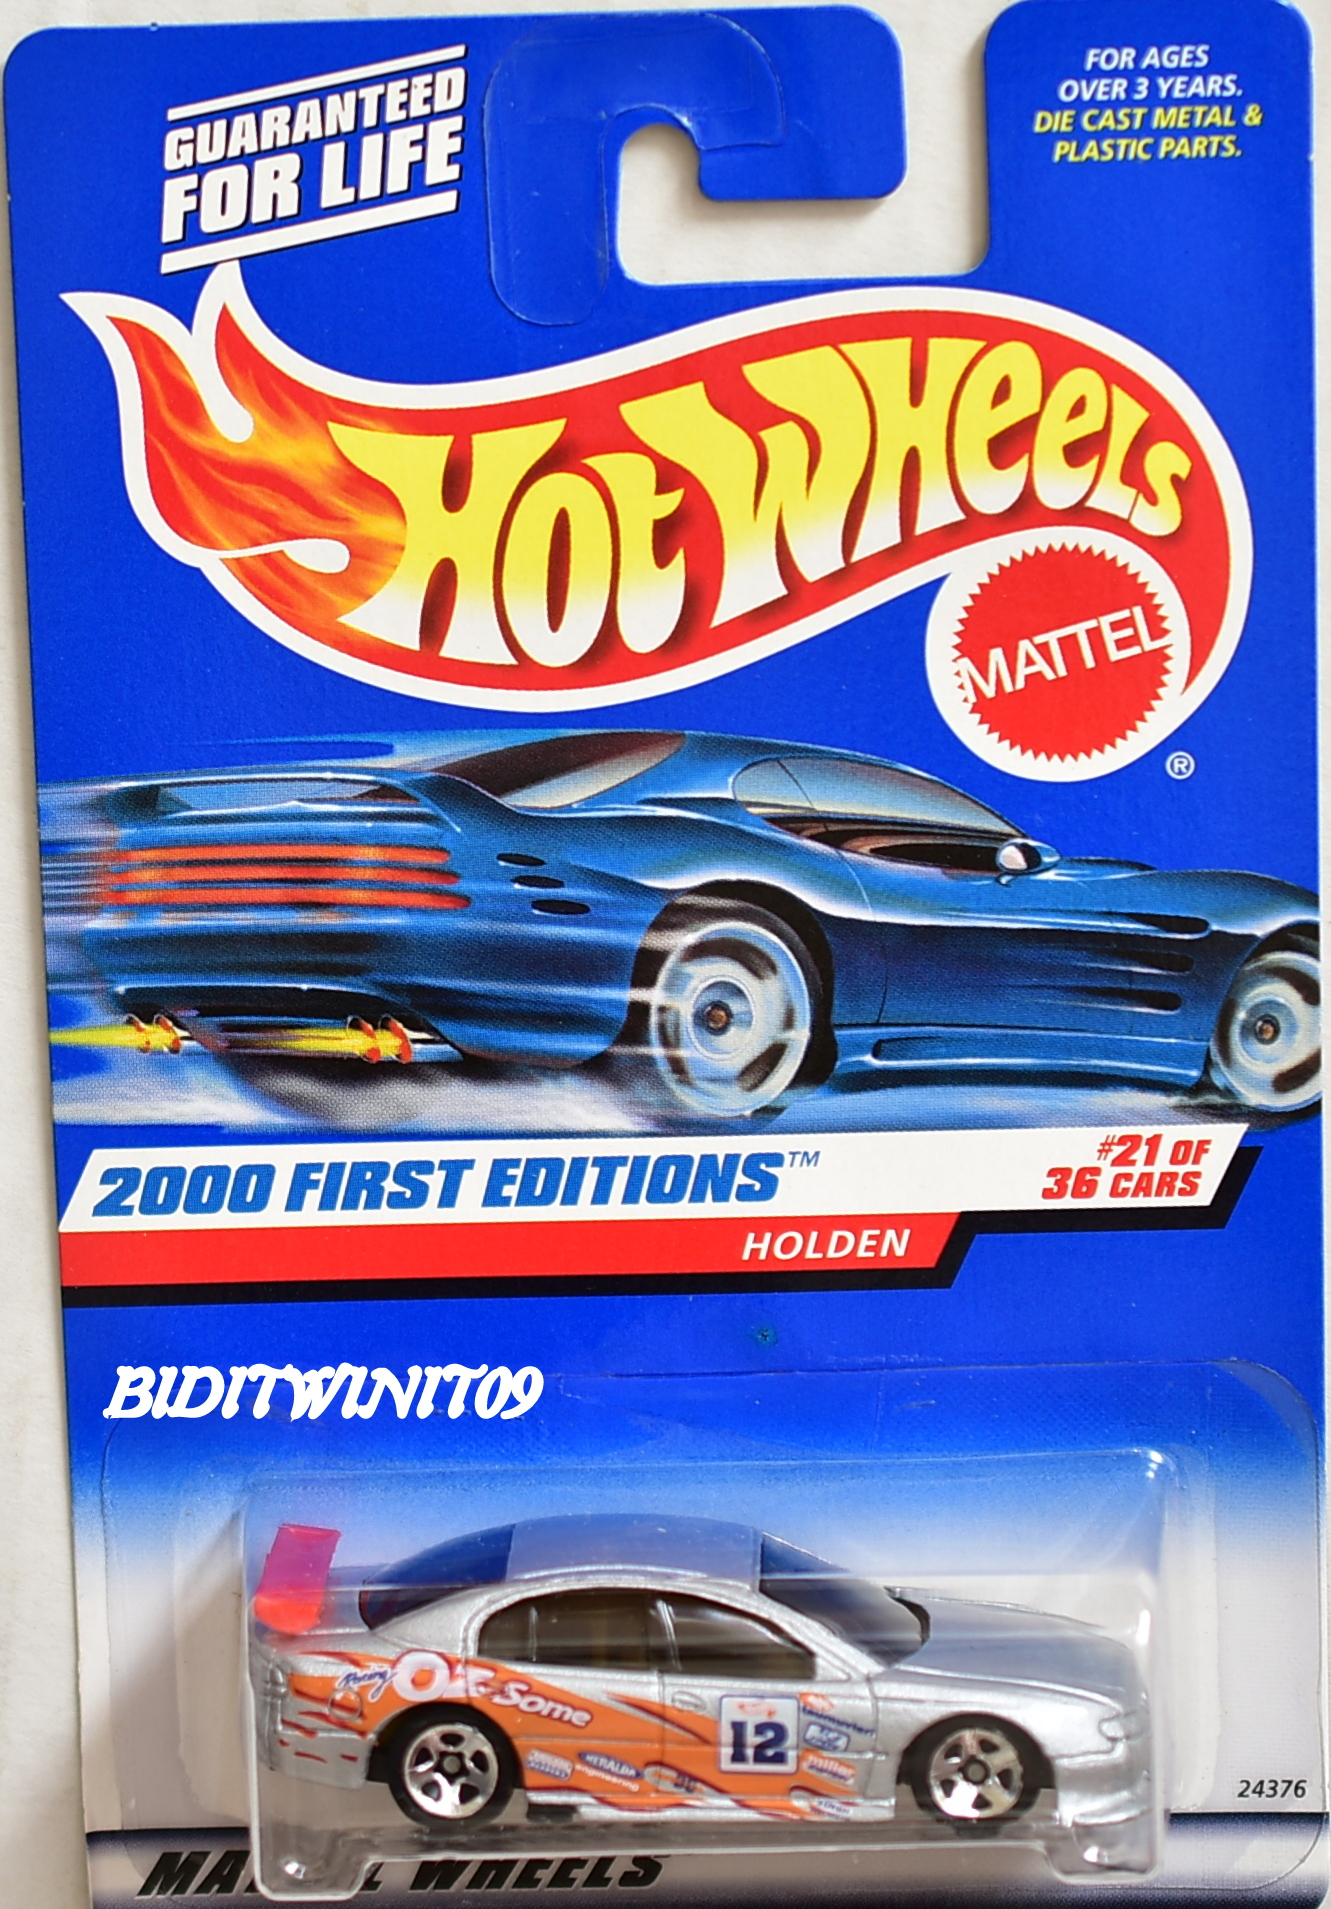 HOT WHEELS 2000 FIRST EDITIONS SS COMMODORE (HOLDEN) #21/36 MIB